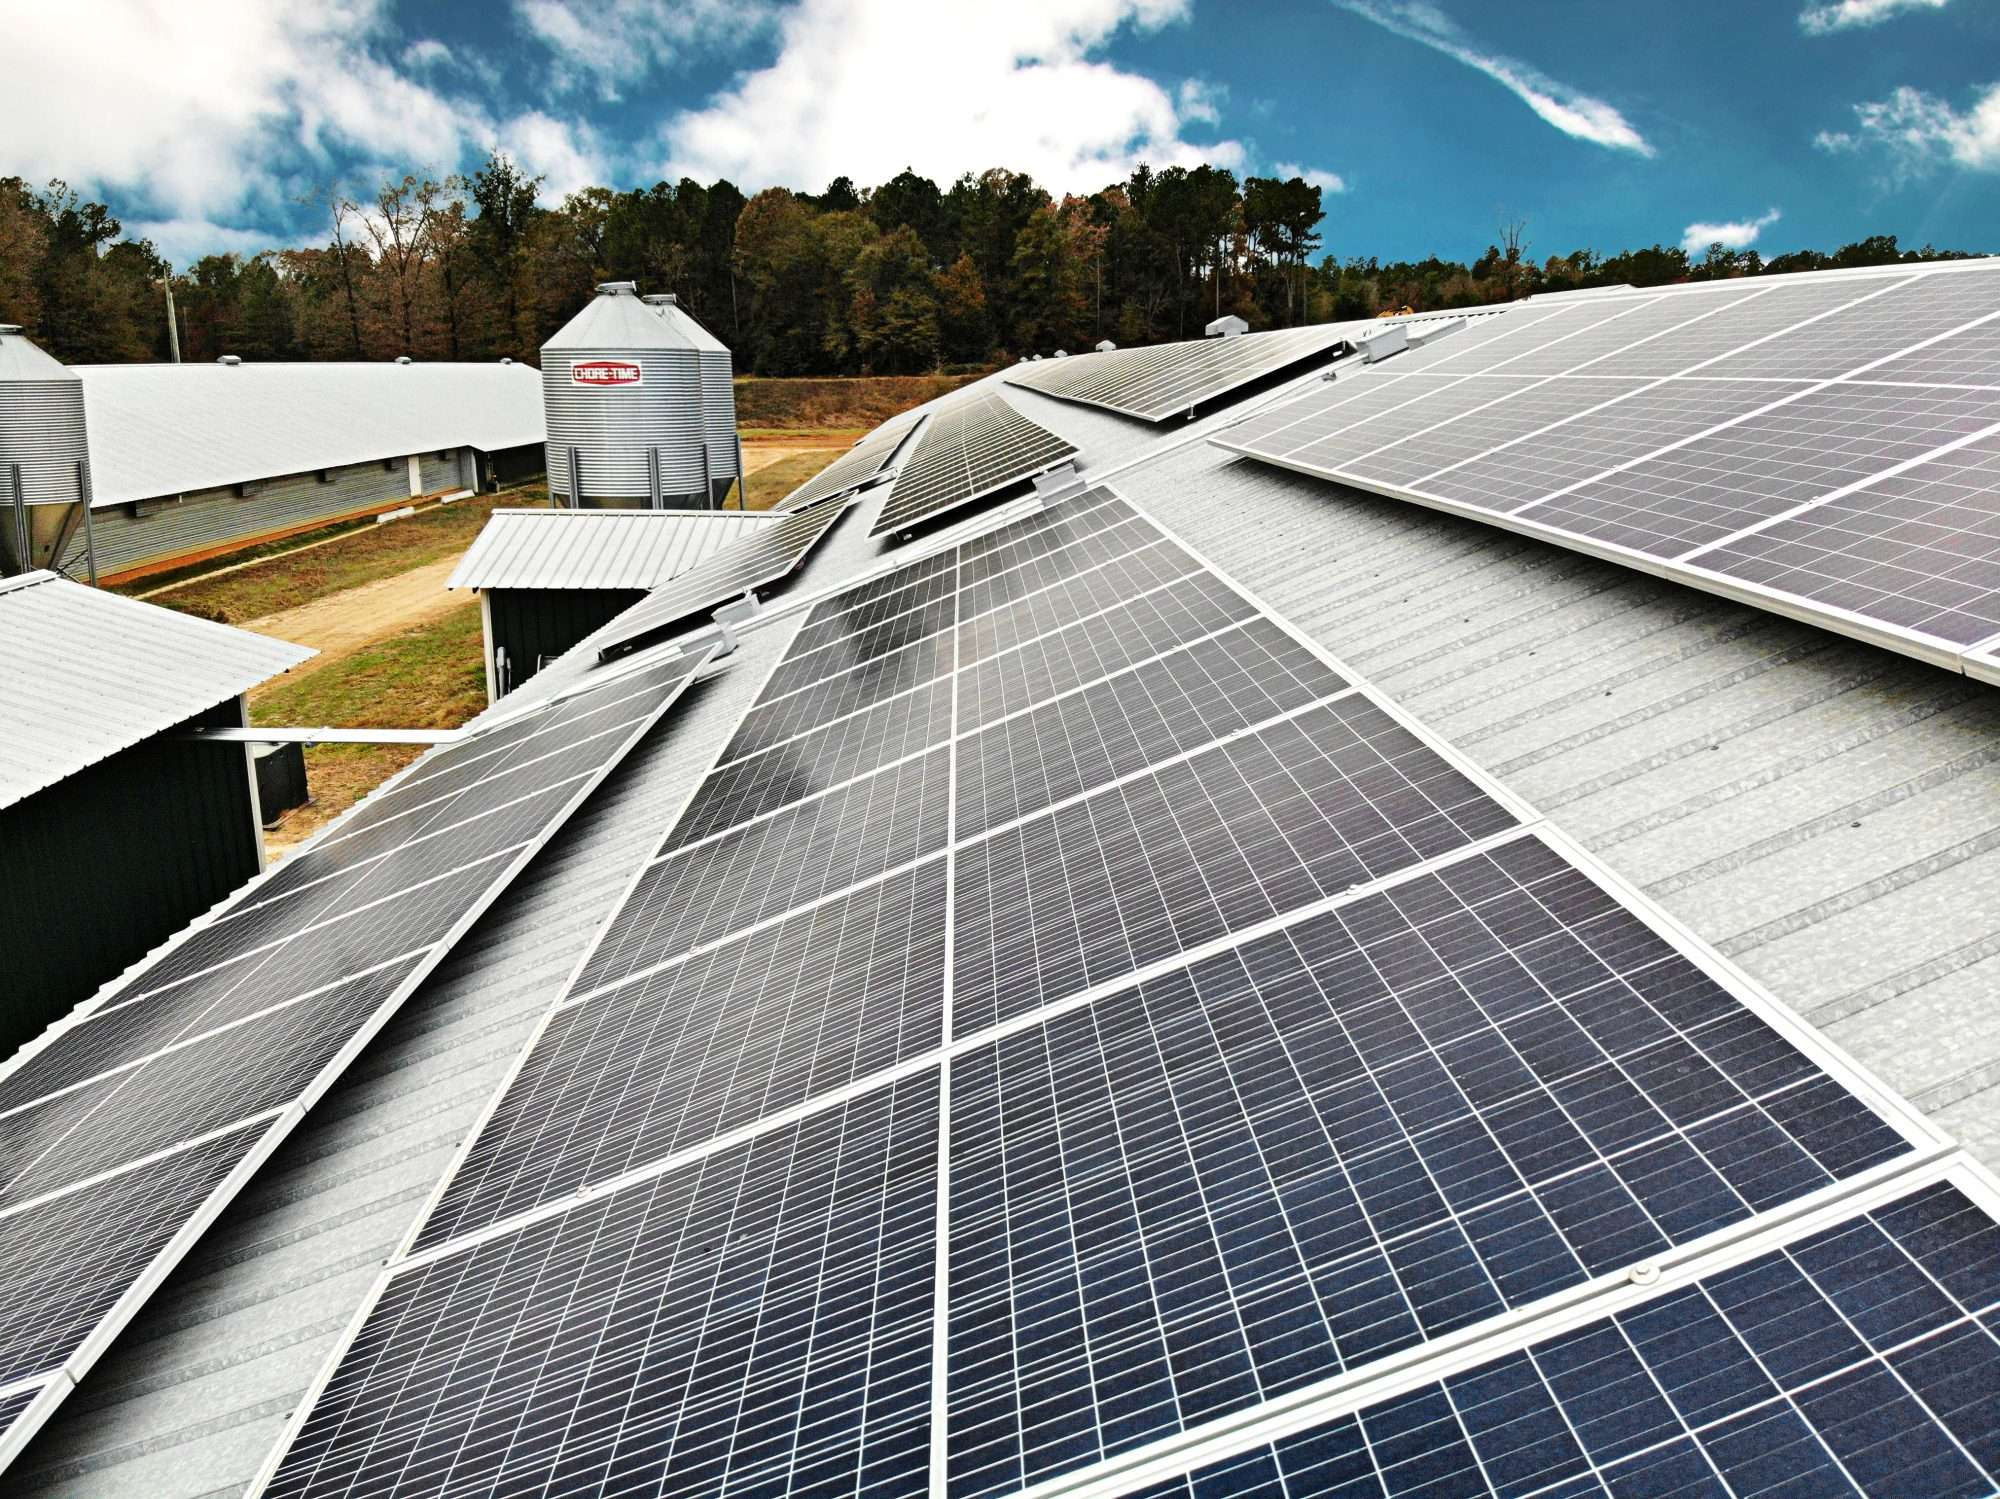 poultry farm with solar panels